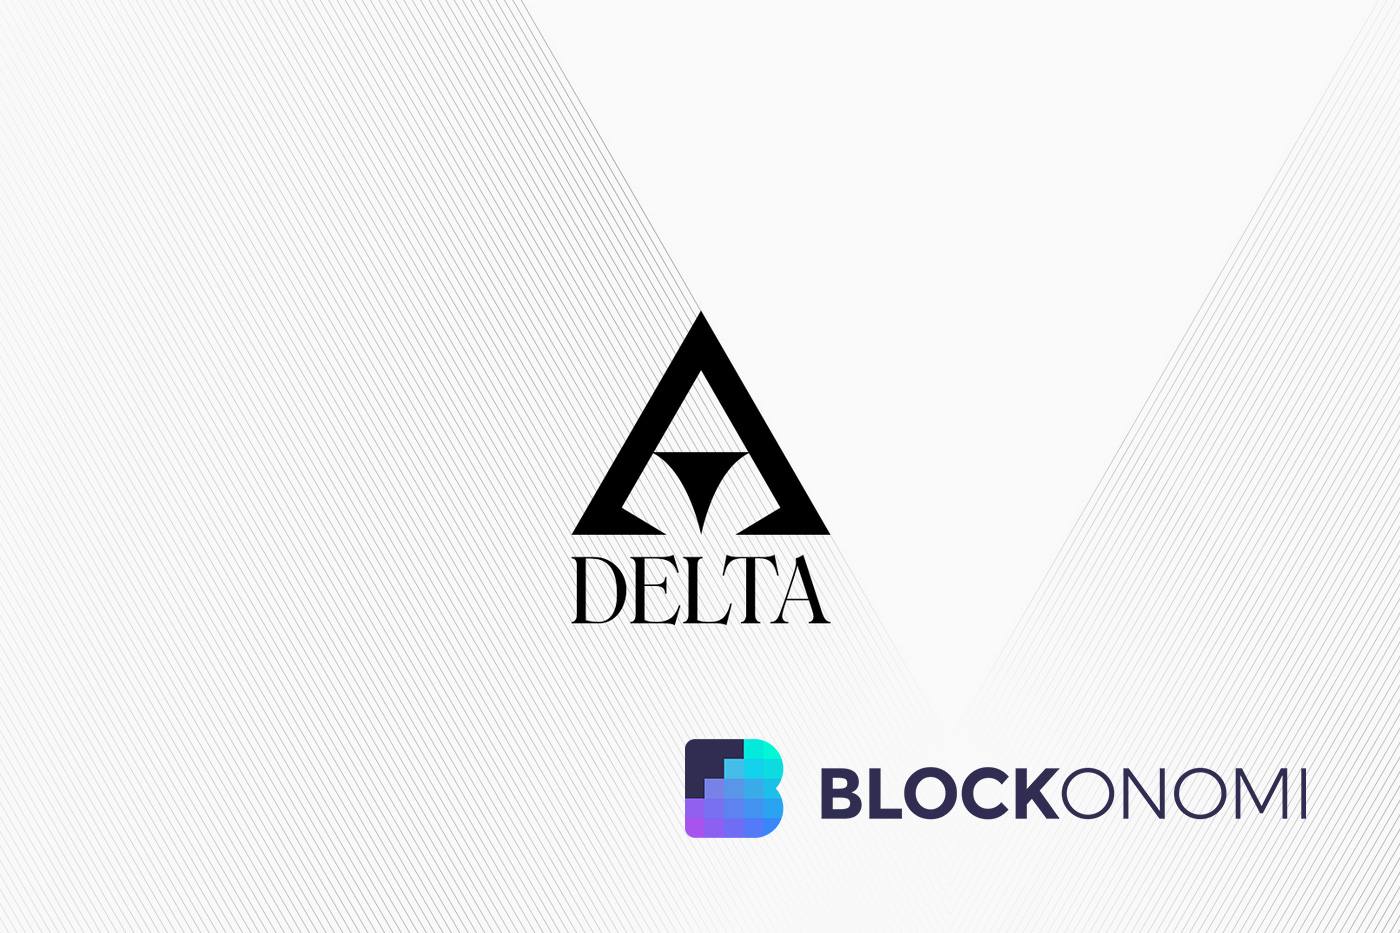 Delta Financial: New Project Working to Revolutionize Decentralized Finance